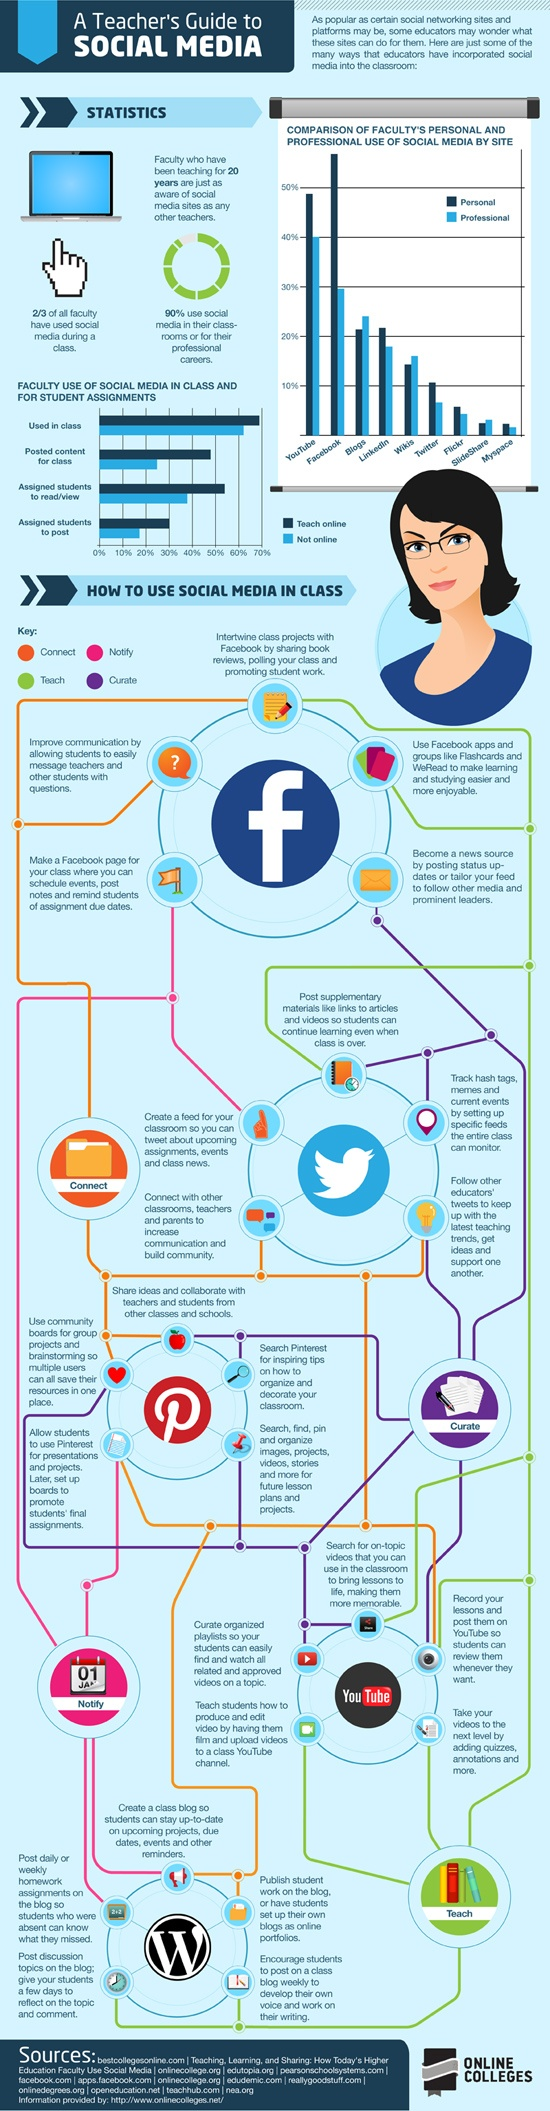 77 best images about Social Media in Education on Pinterest ...